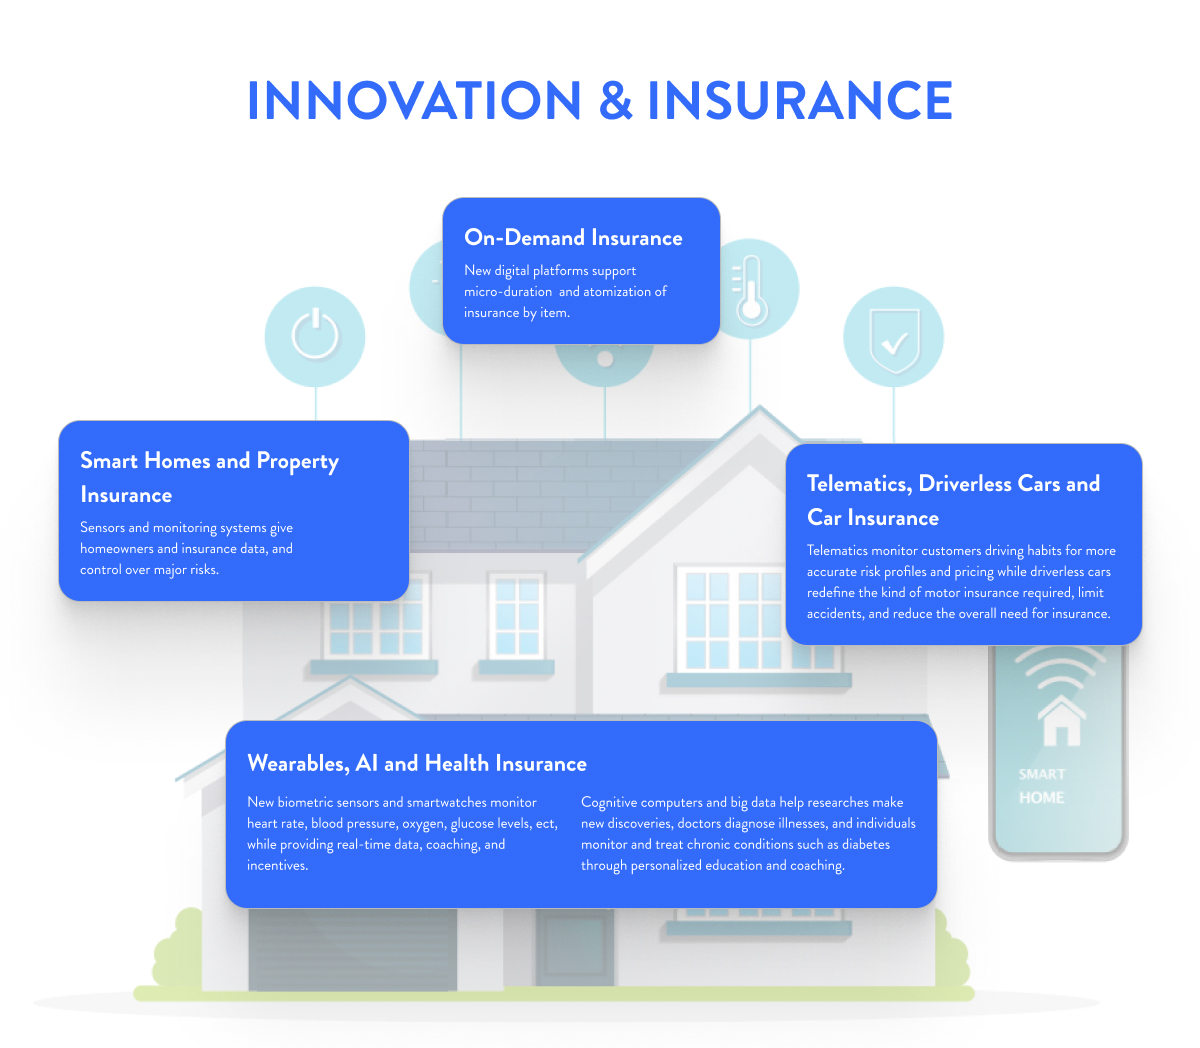 Digital transformation components for insurance companies: Innovation & Insurance; on-demand insurance, telematics, property insurance, wearables & AI.